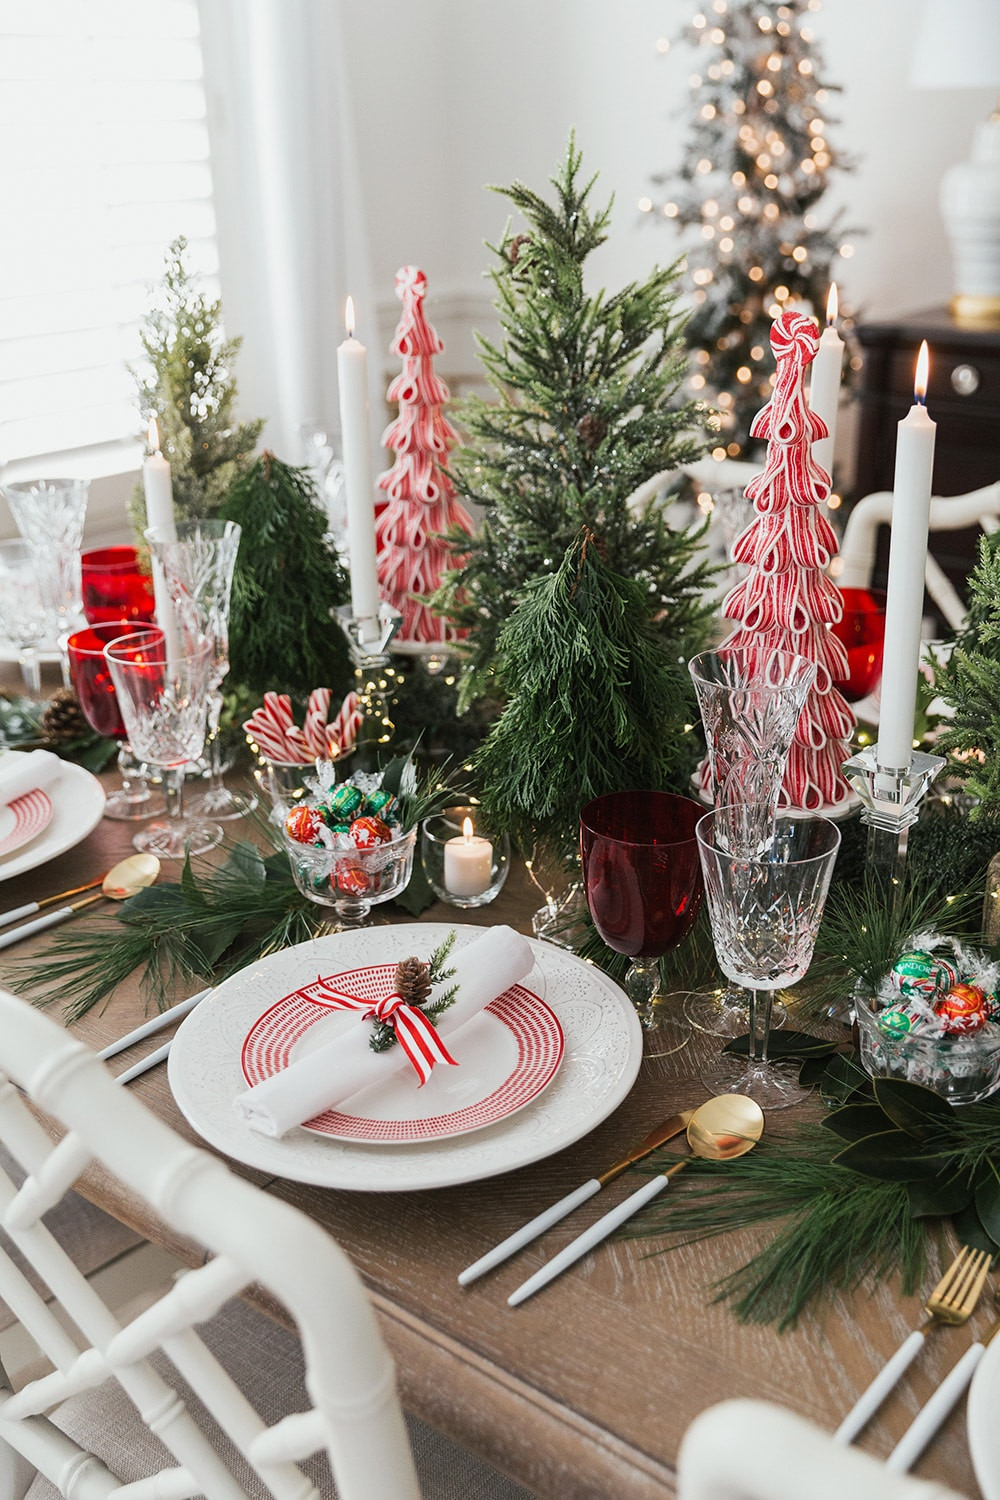 Christmas with a touch of colour